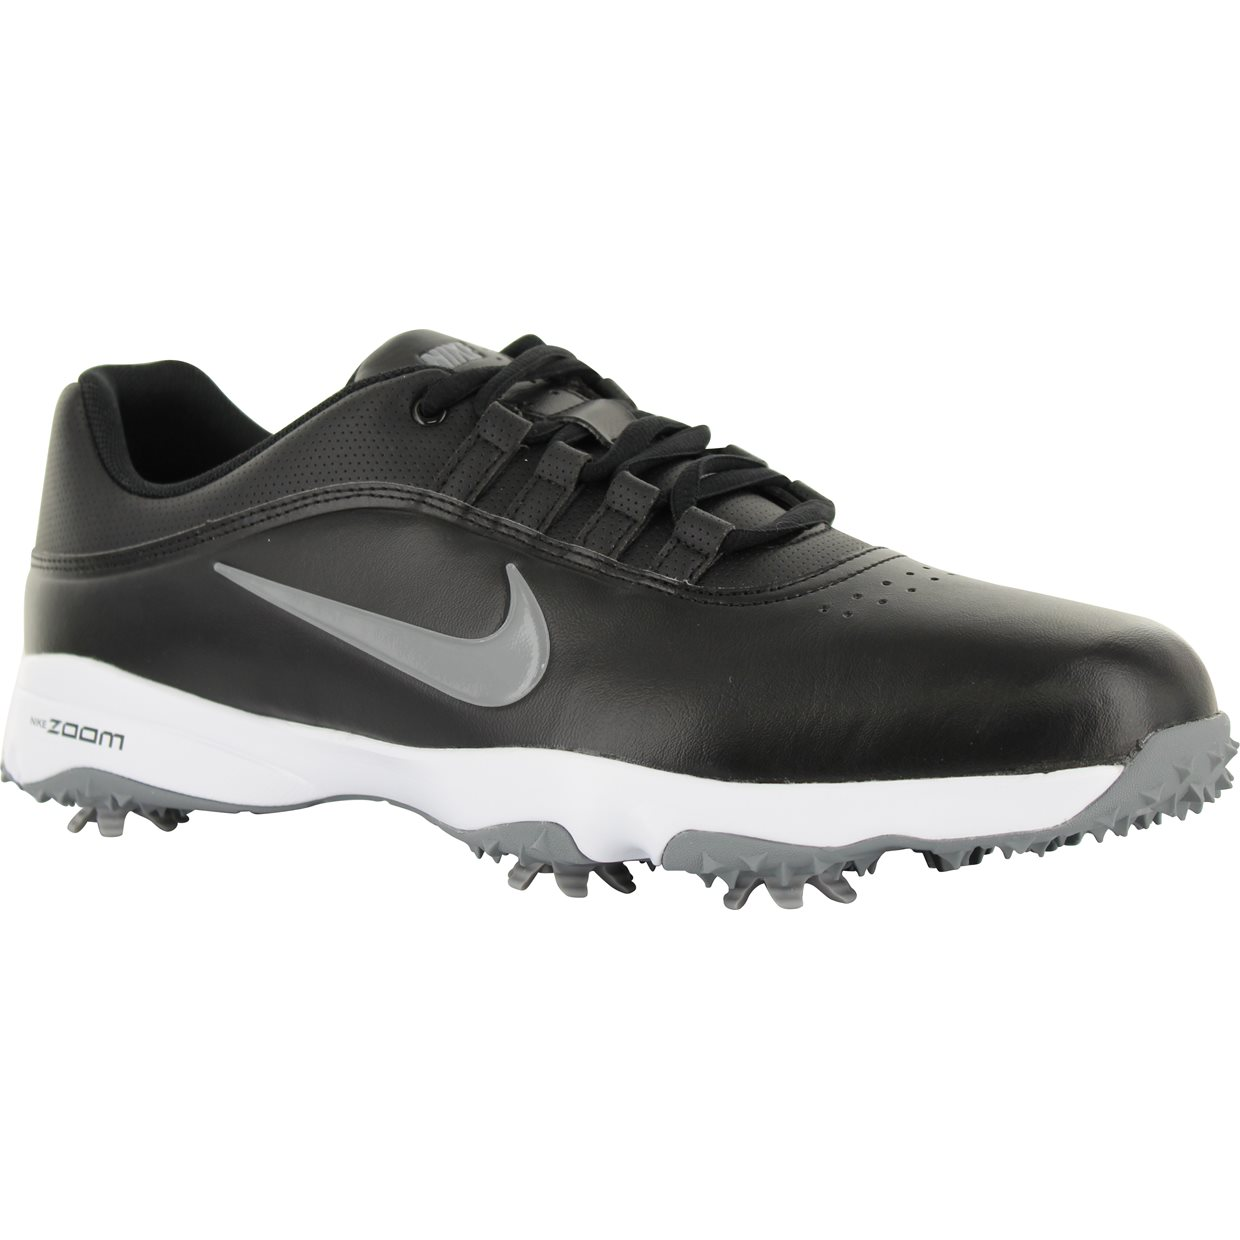 Nike Air Zoom Rival  Golf Shoe Review